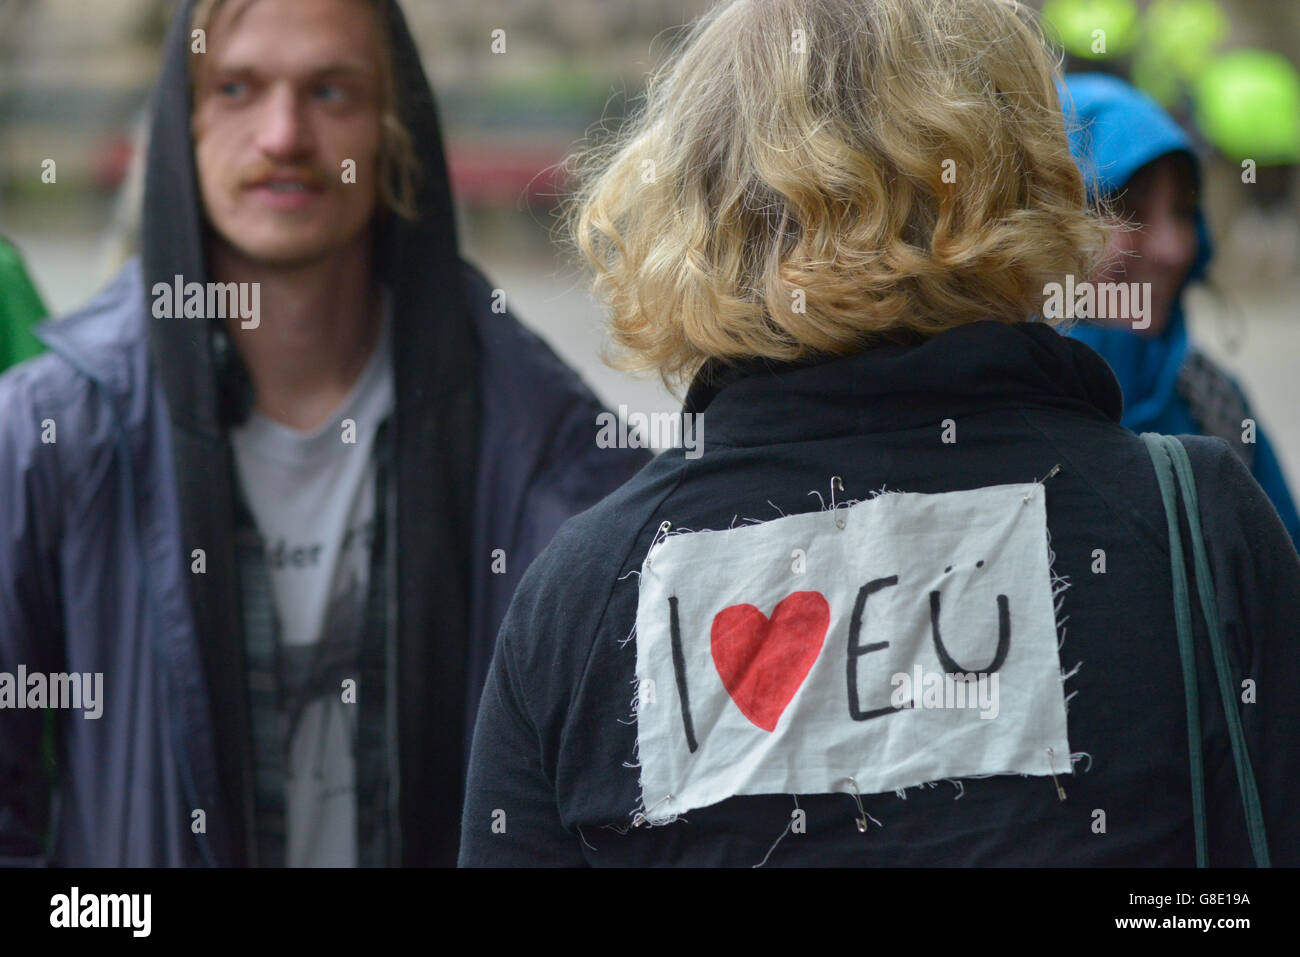 Manchester, UK. 28th June, 2016. A person wearing an 'I [Heart] E[uropean] U[nion]' badge at the 'Undo Brexit' demonstration Stock Photo